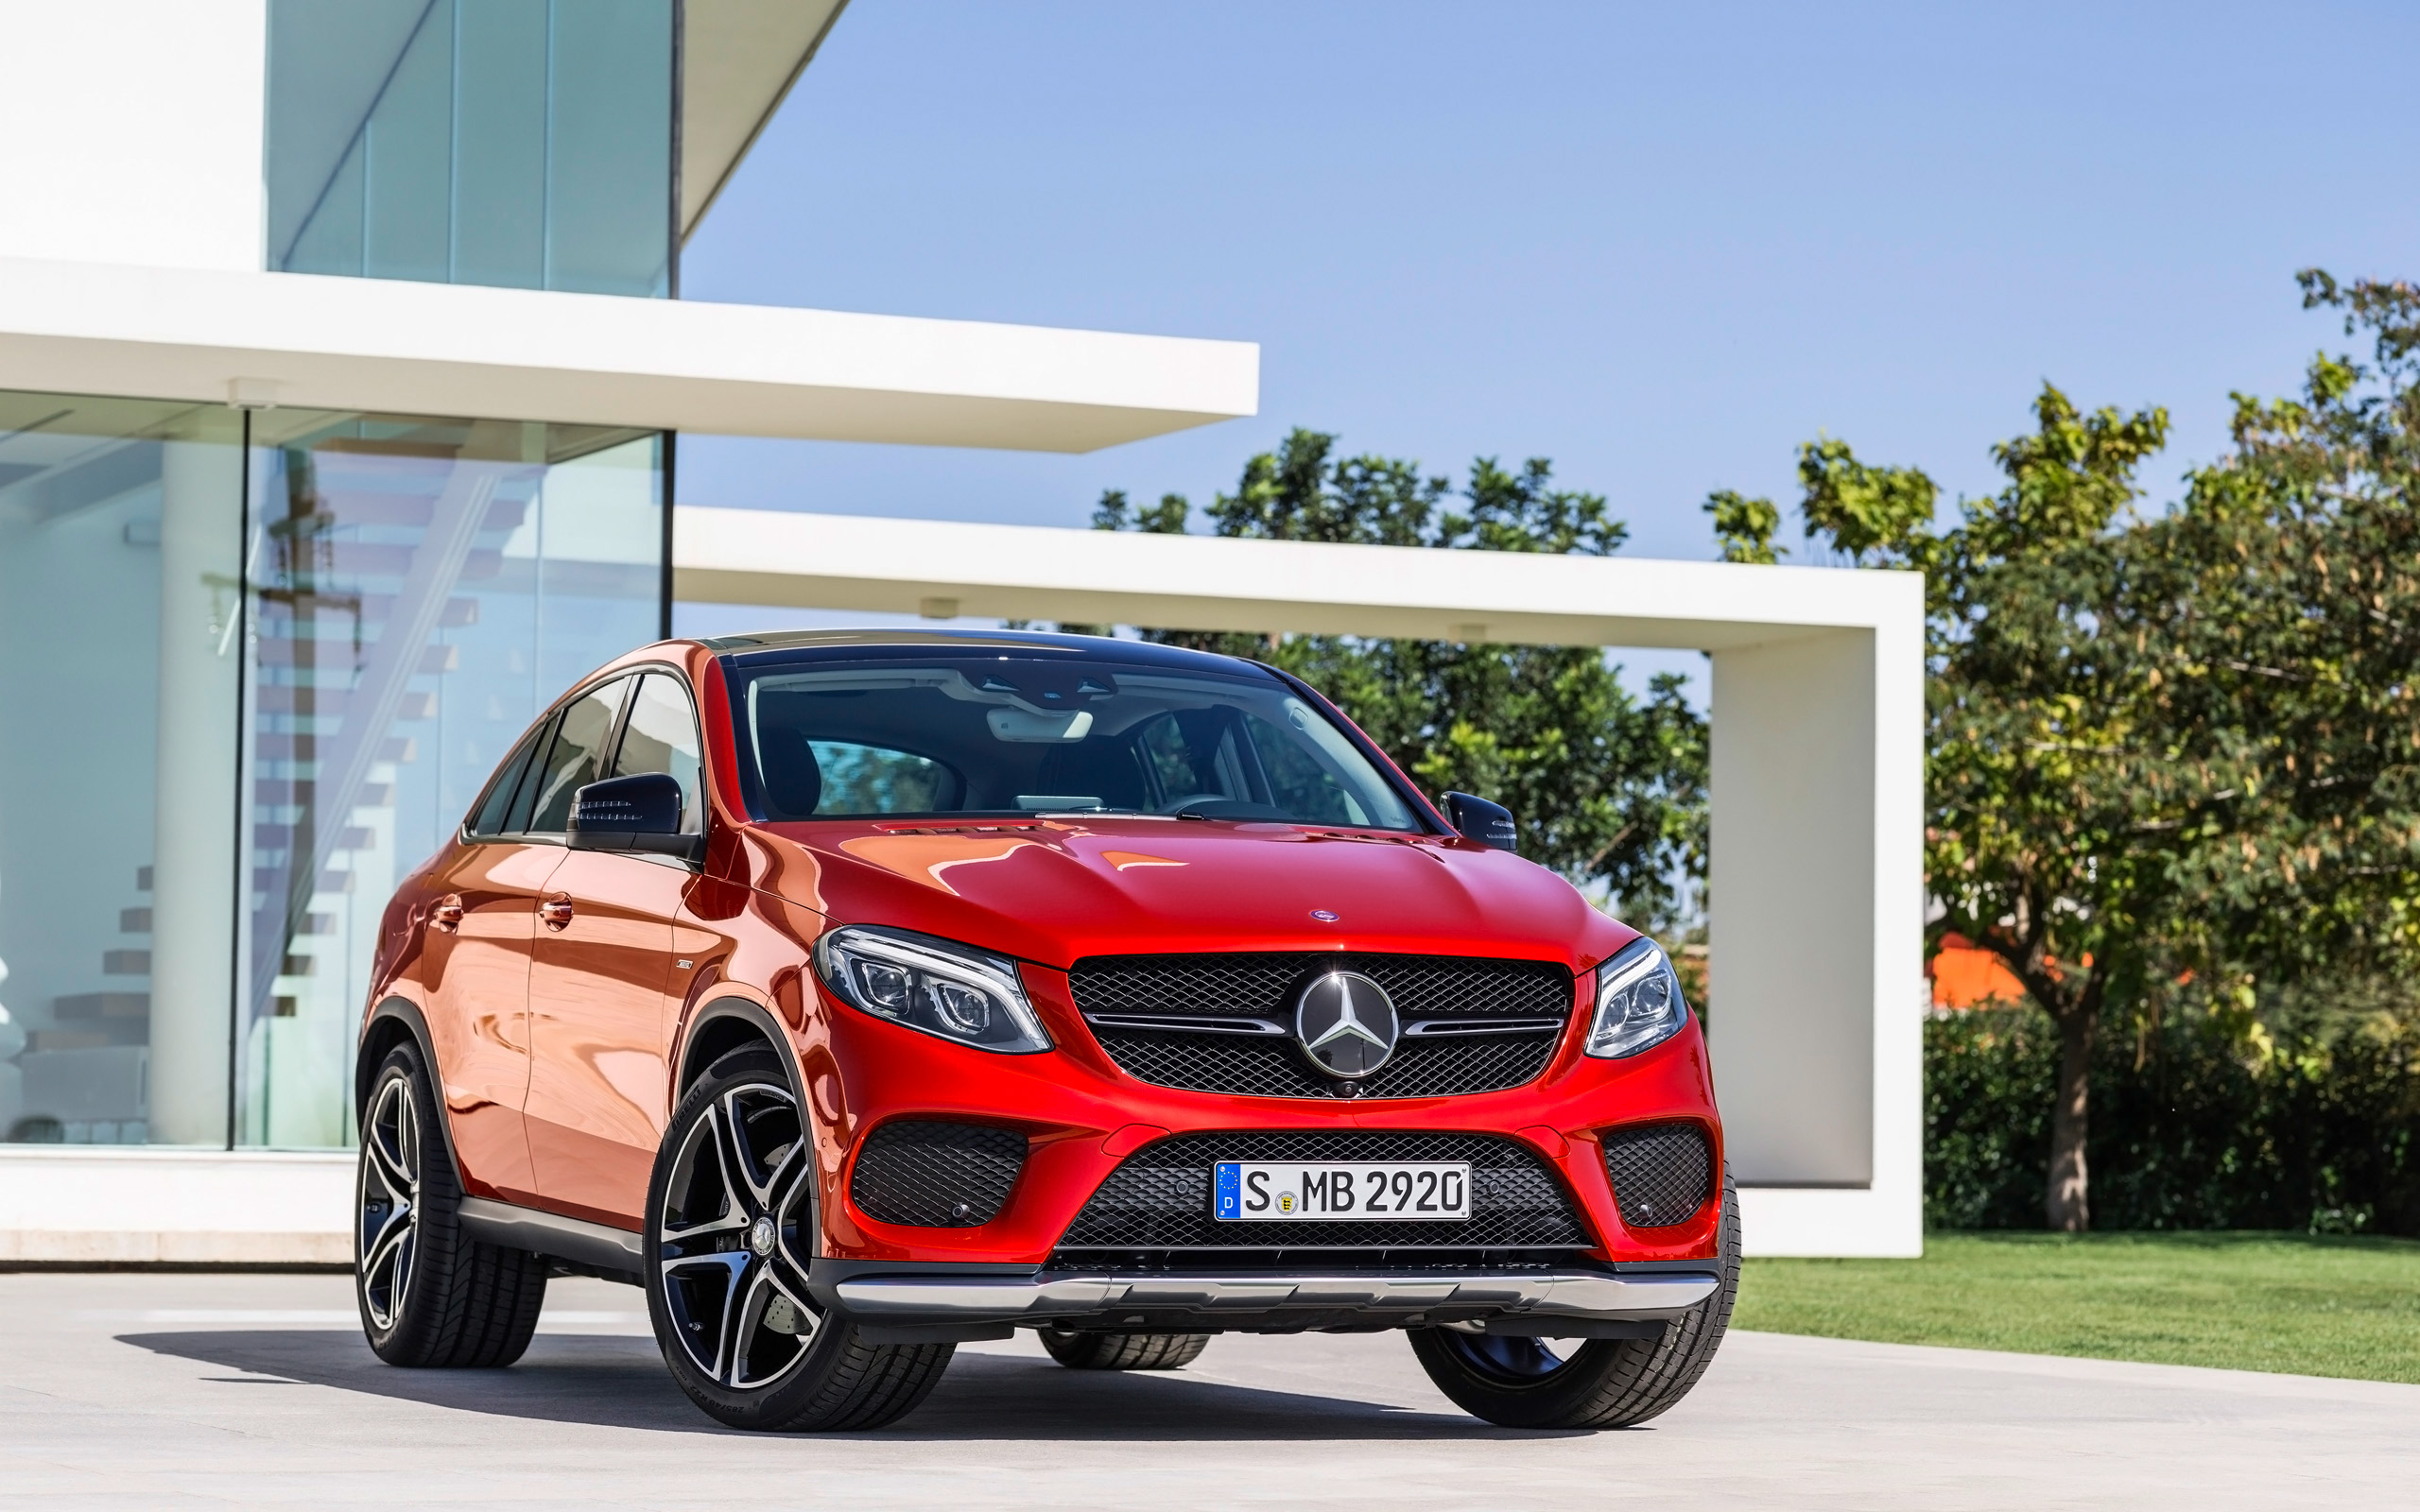 Mercedes Benz Gle Coupe Hd Wallpapers 7wallpapers Net